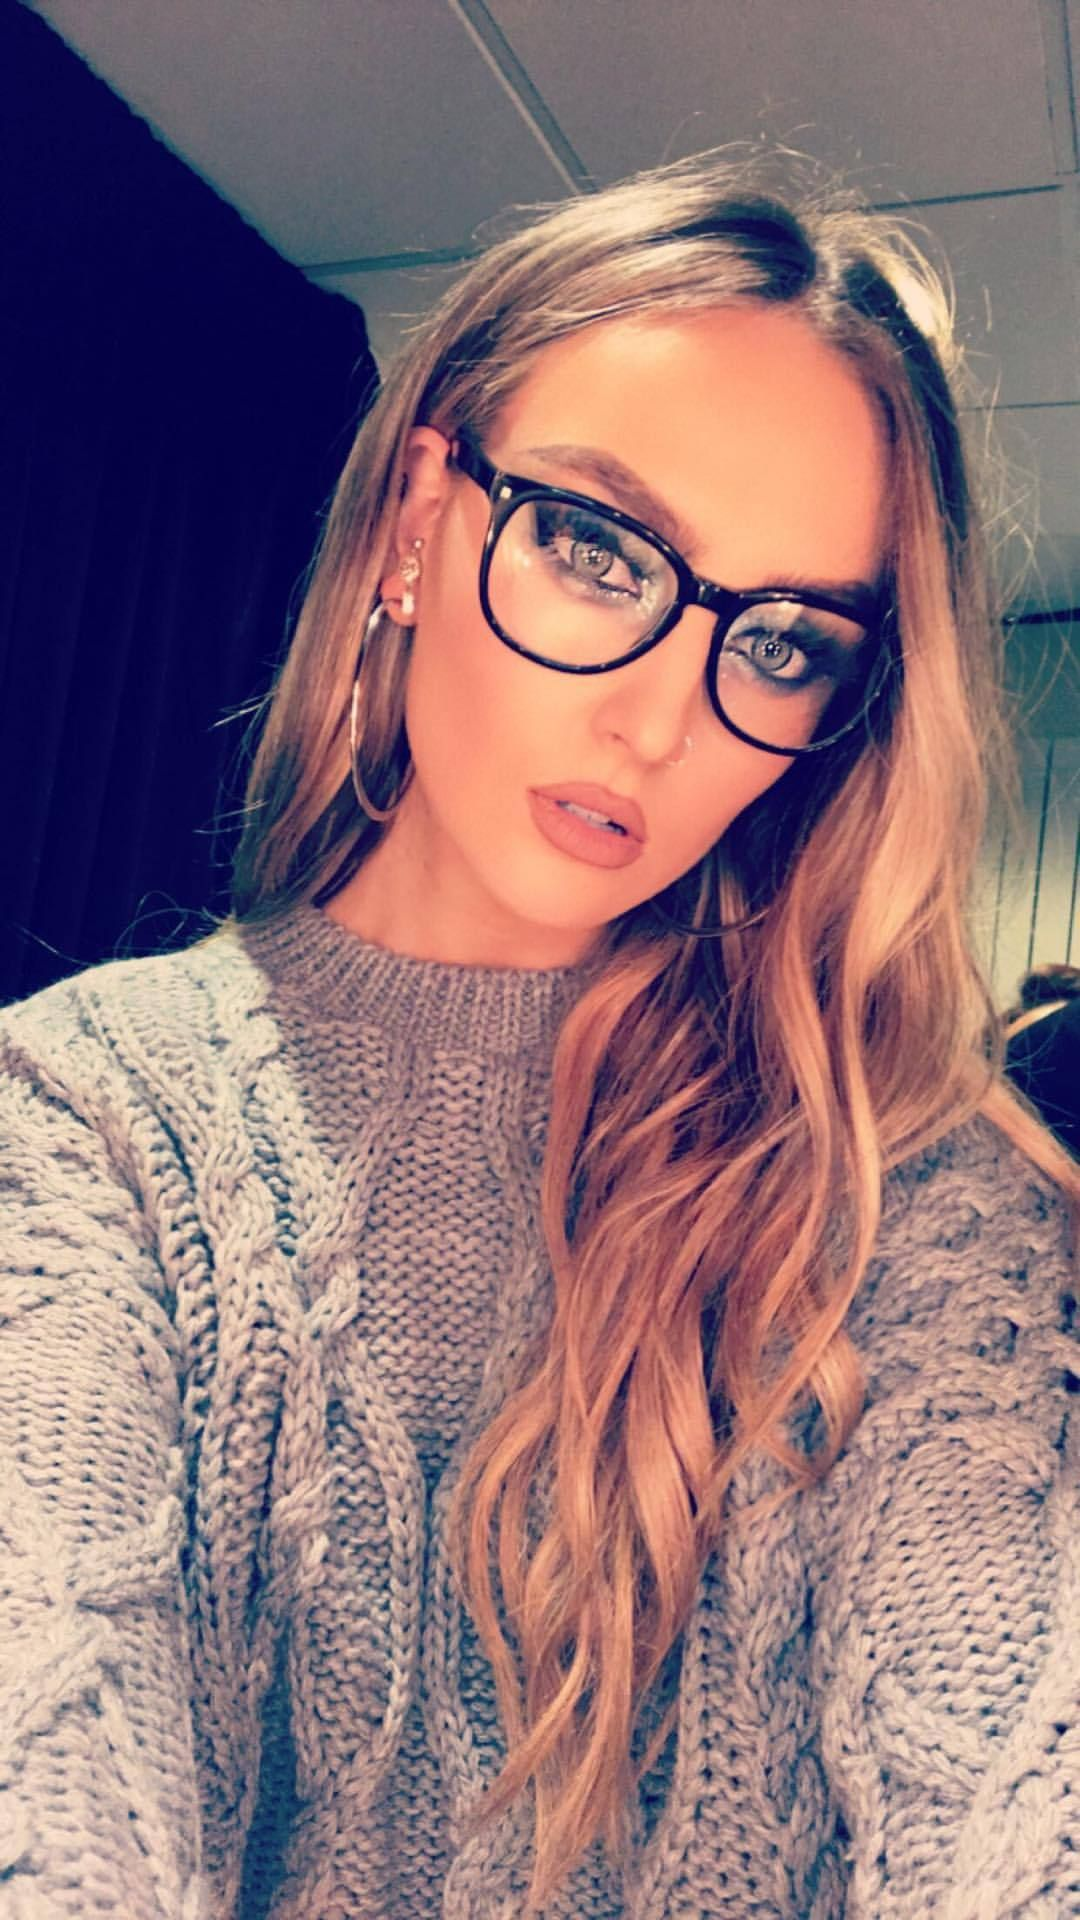 Twitter Perrie Edwards nude photos 2019